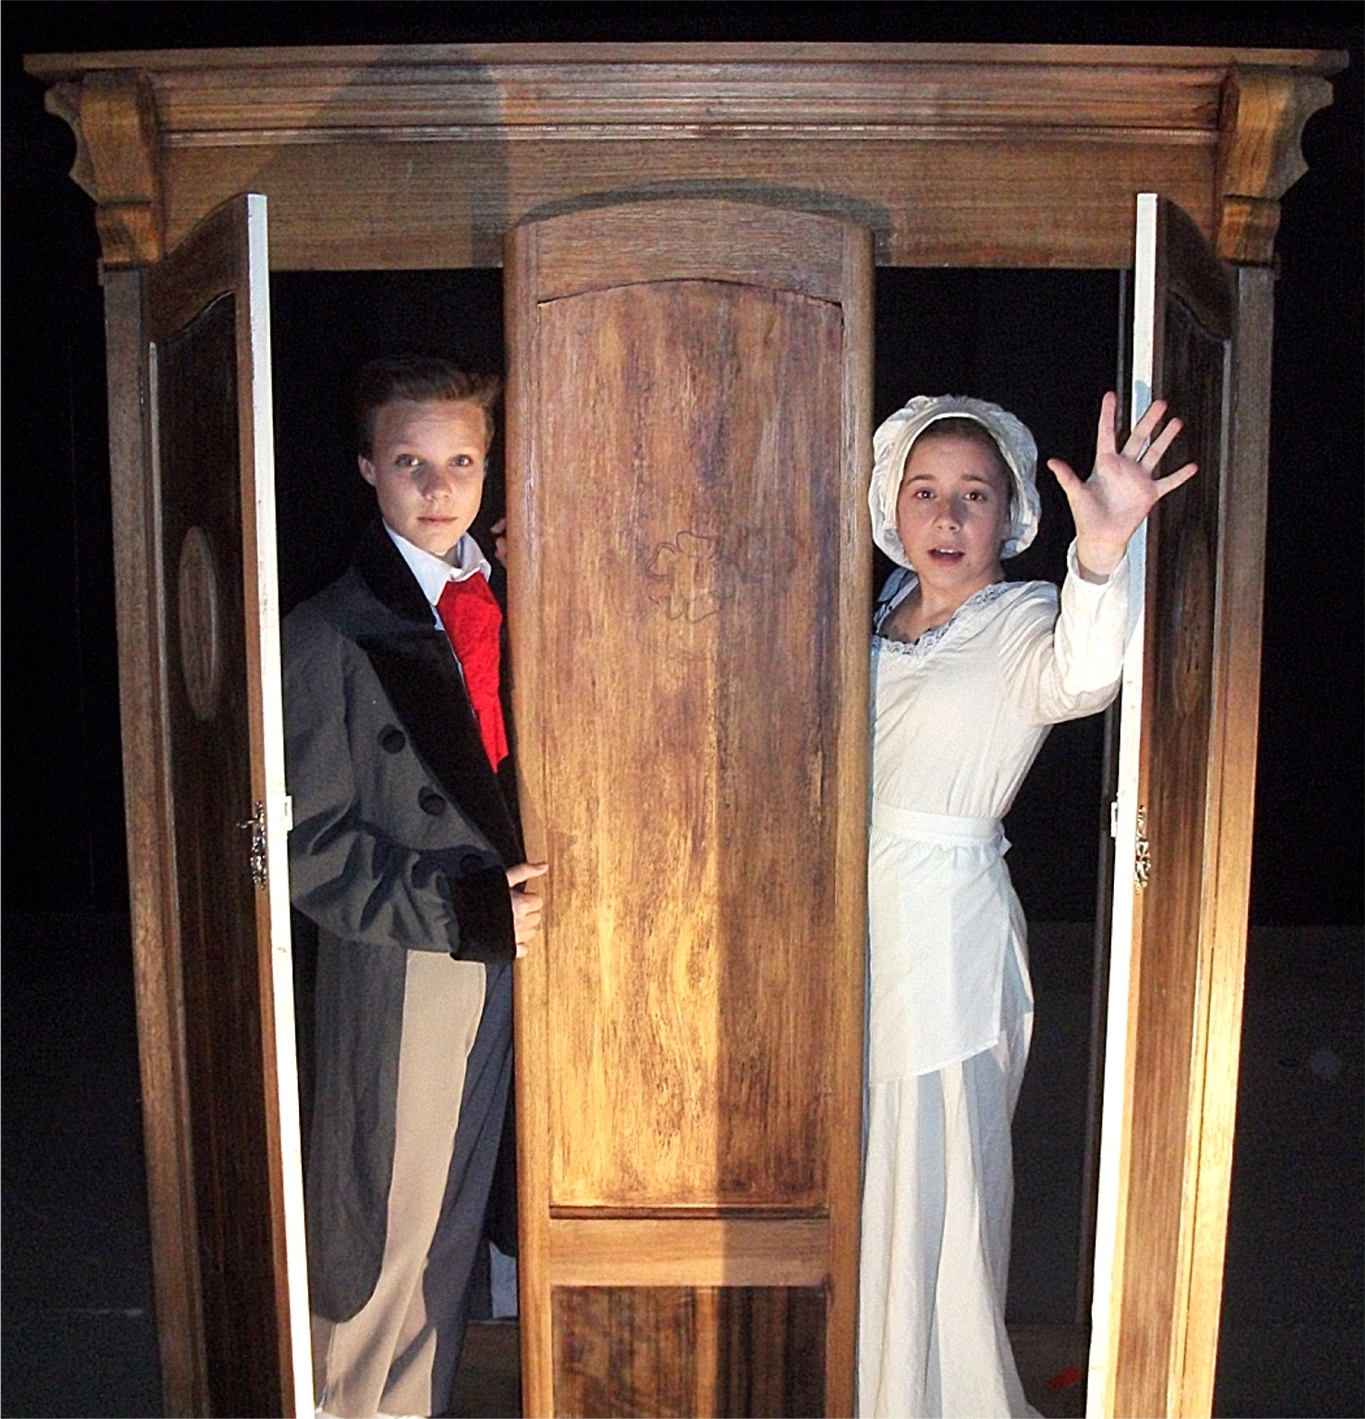 Luis Barnes, left, and Chloe Marlow are two of 23 actors aged between 11 and 17 appearing in  The Wardrobe .